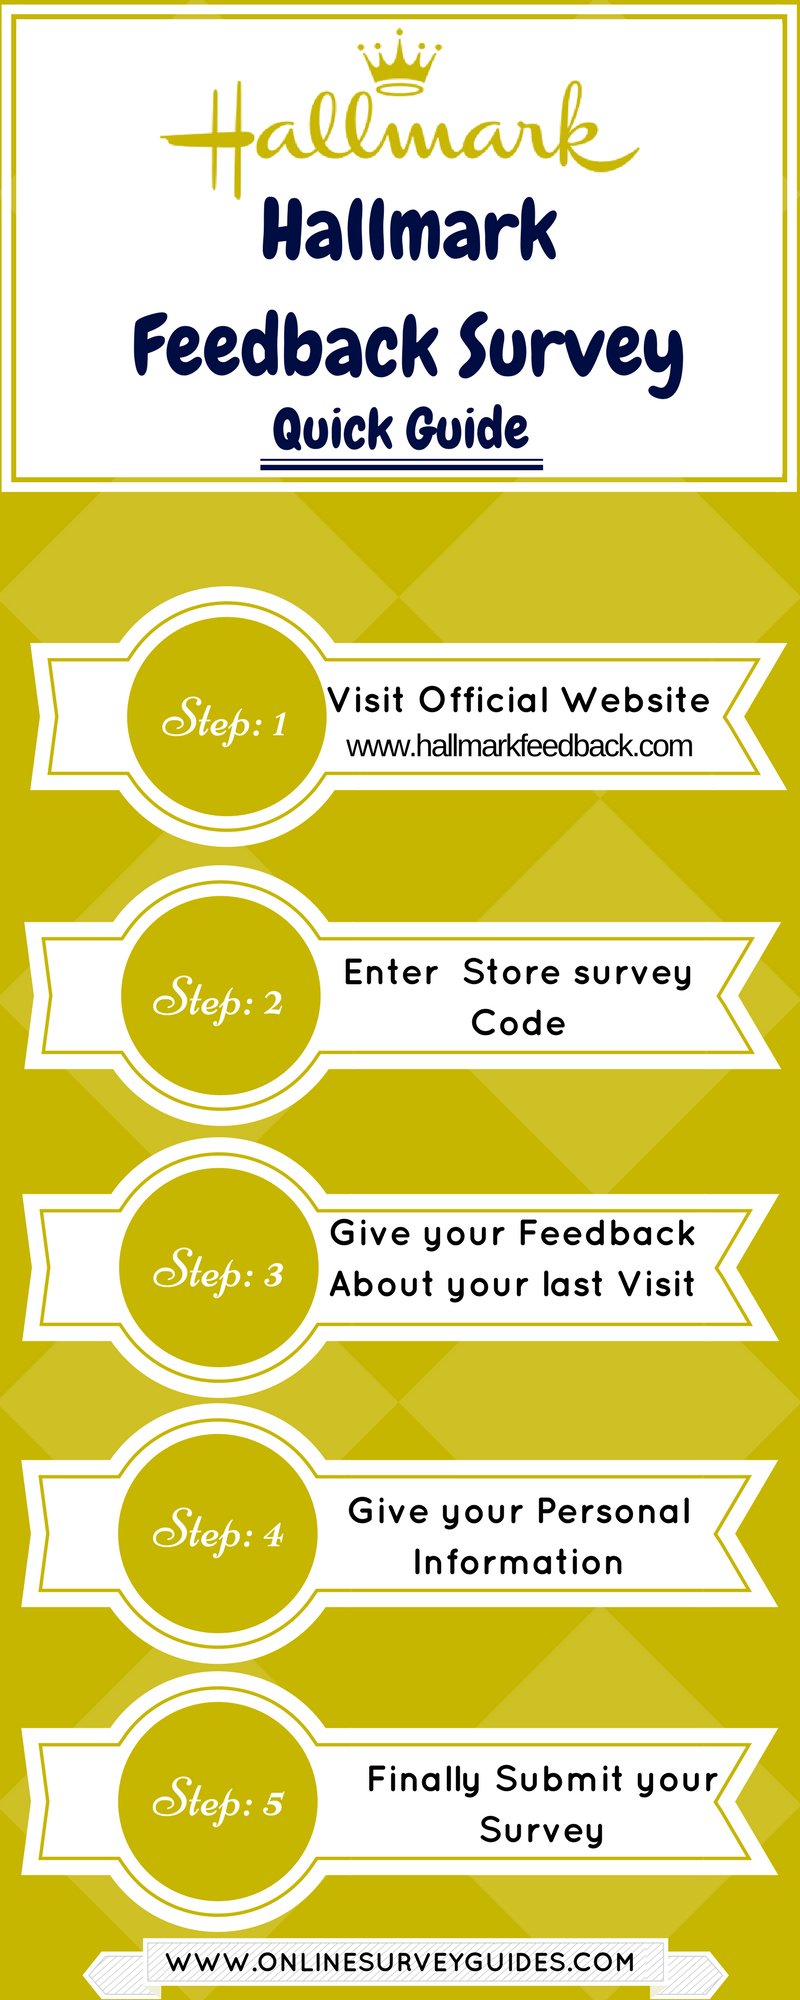 Hallmark Feedback Survey